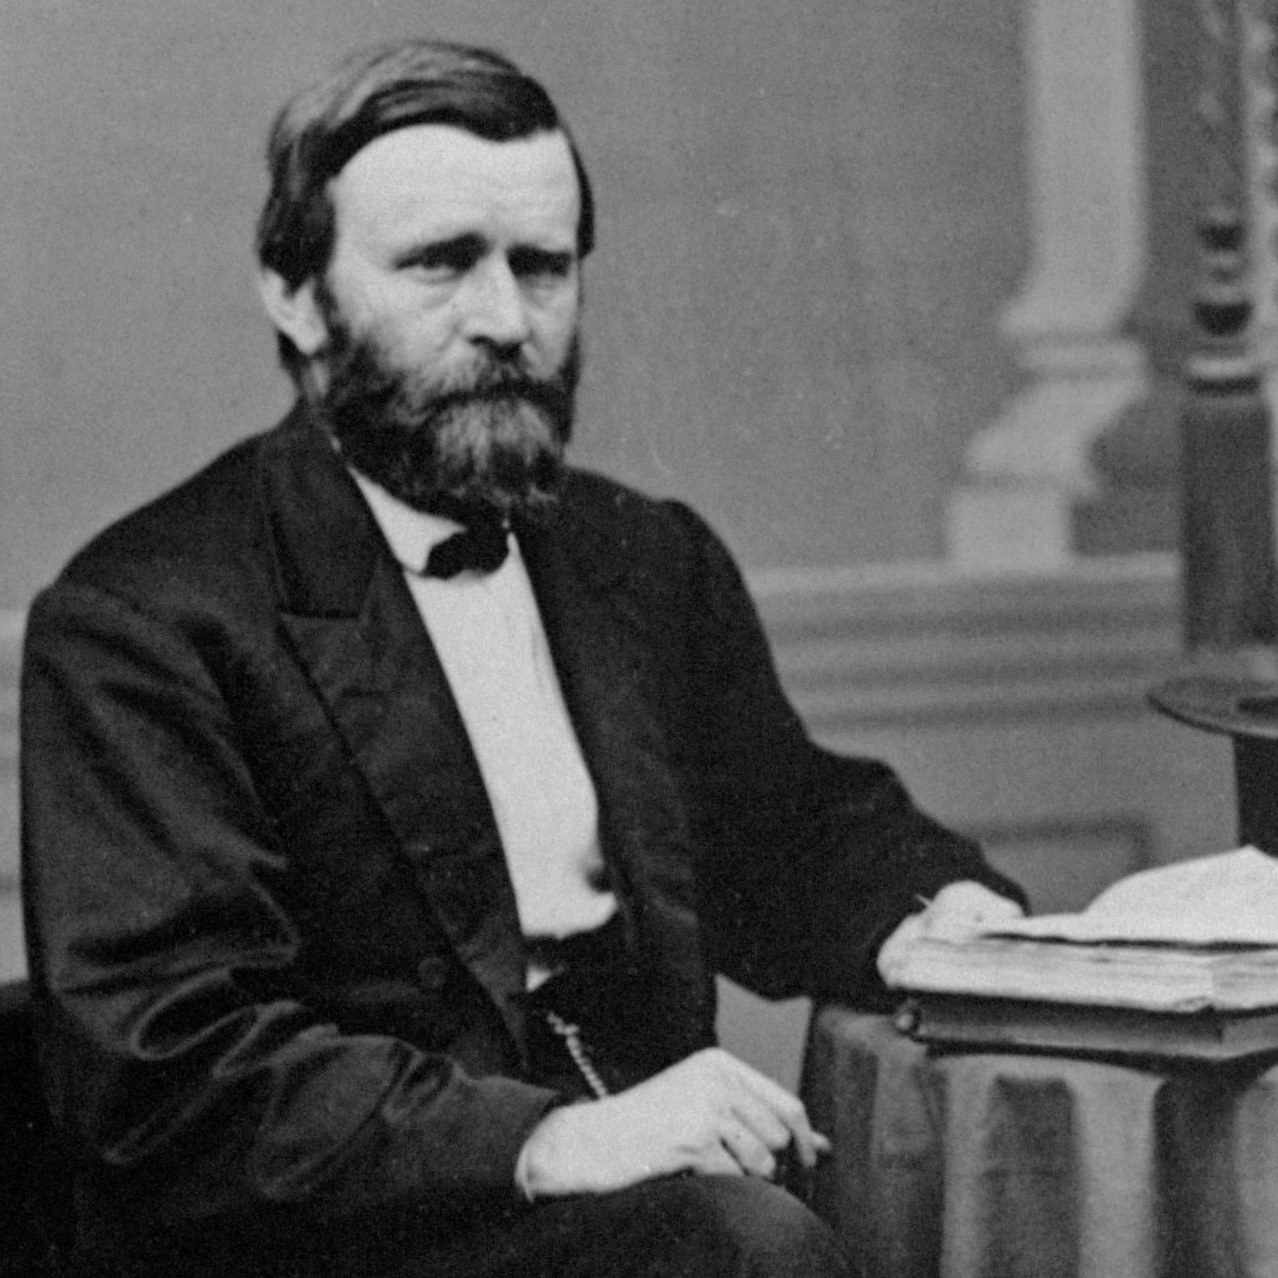 President Ulysses S. Grant, former Civil War general.